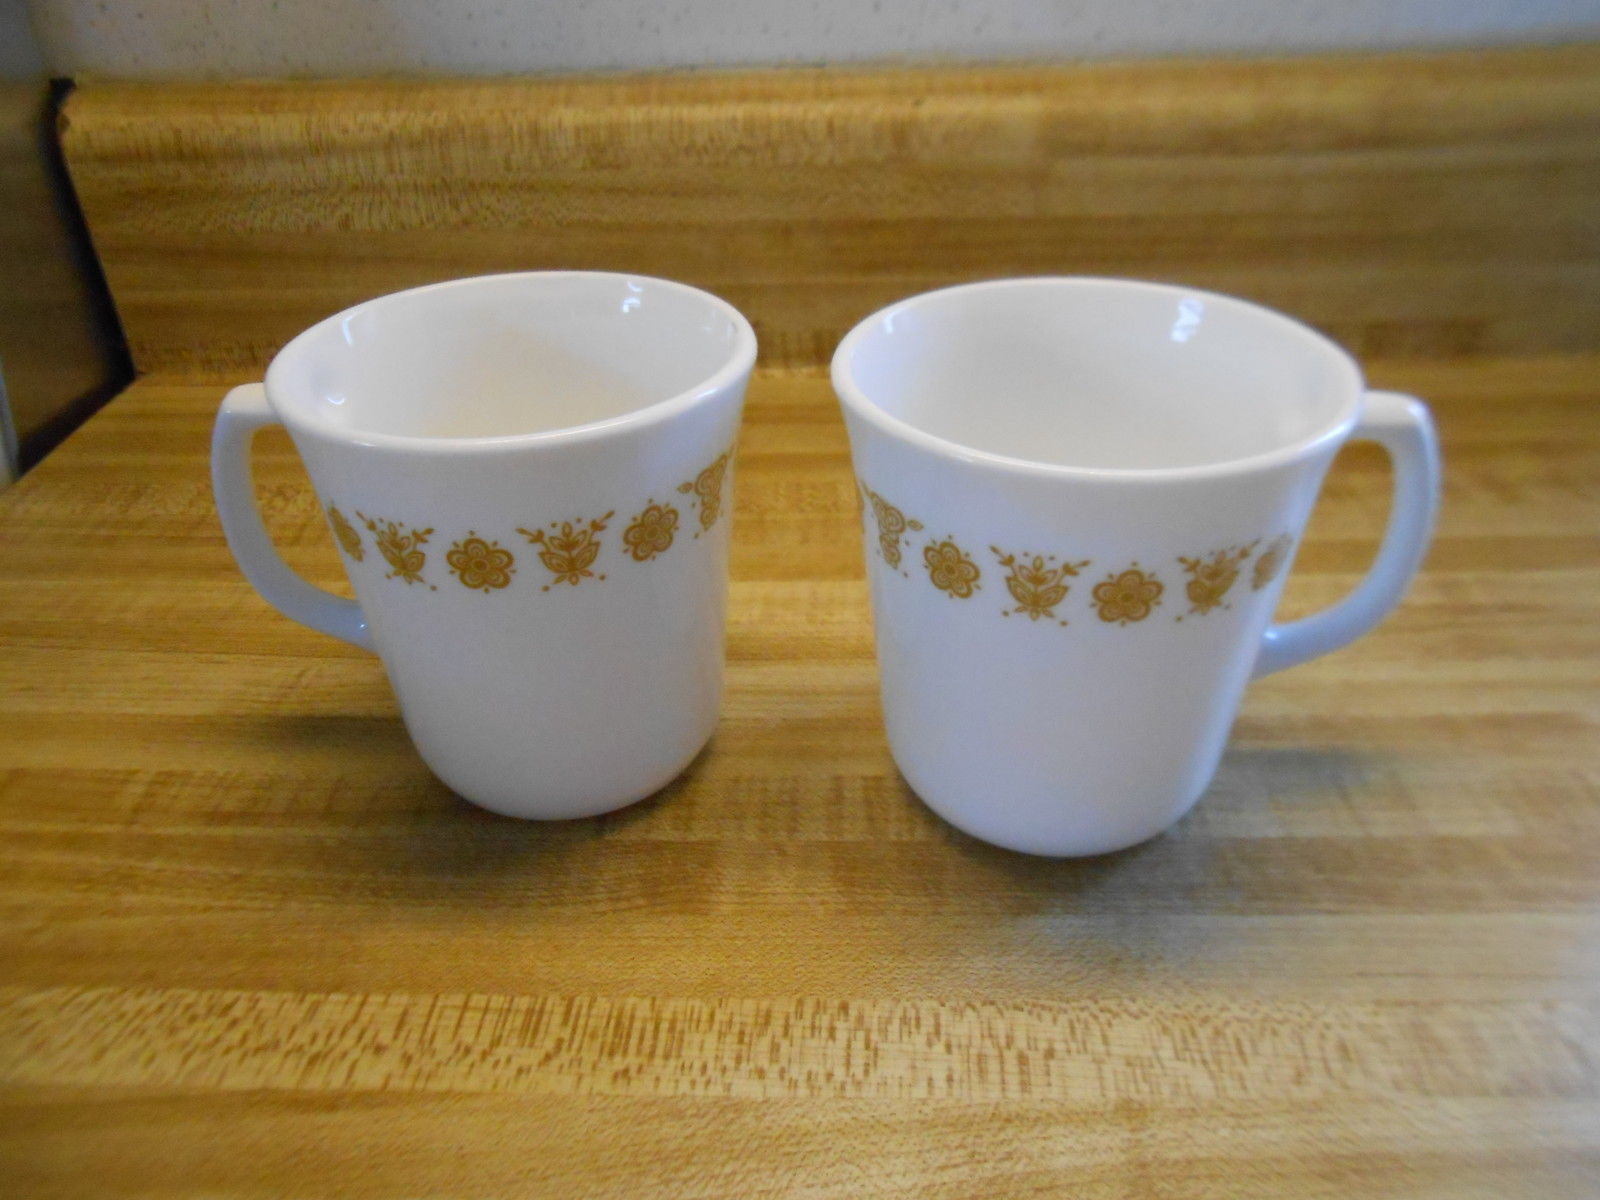 Primary image for corelle gold butterfly cups with D shaped handles lot of 2 cups